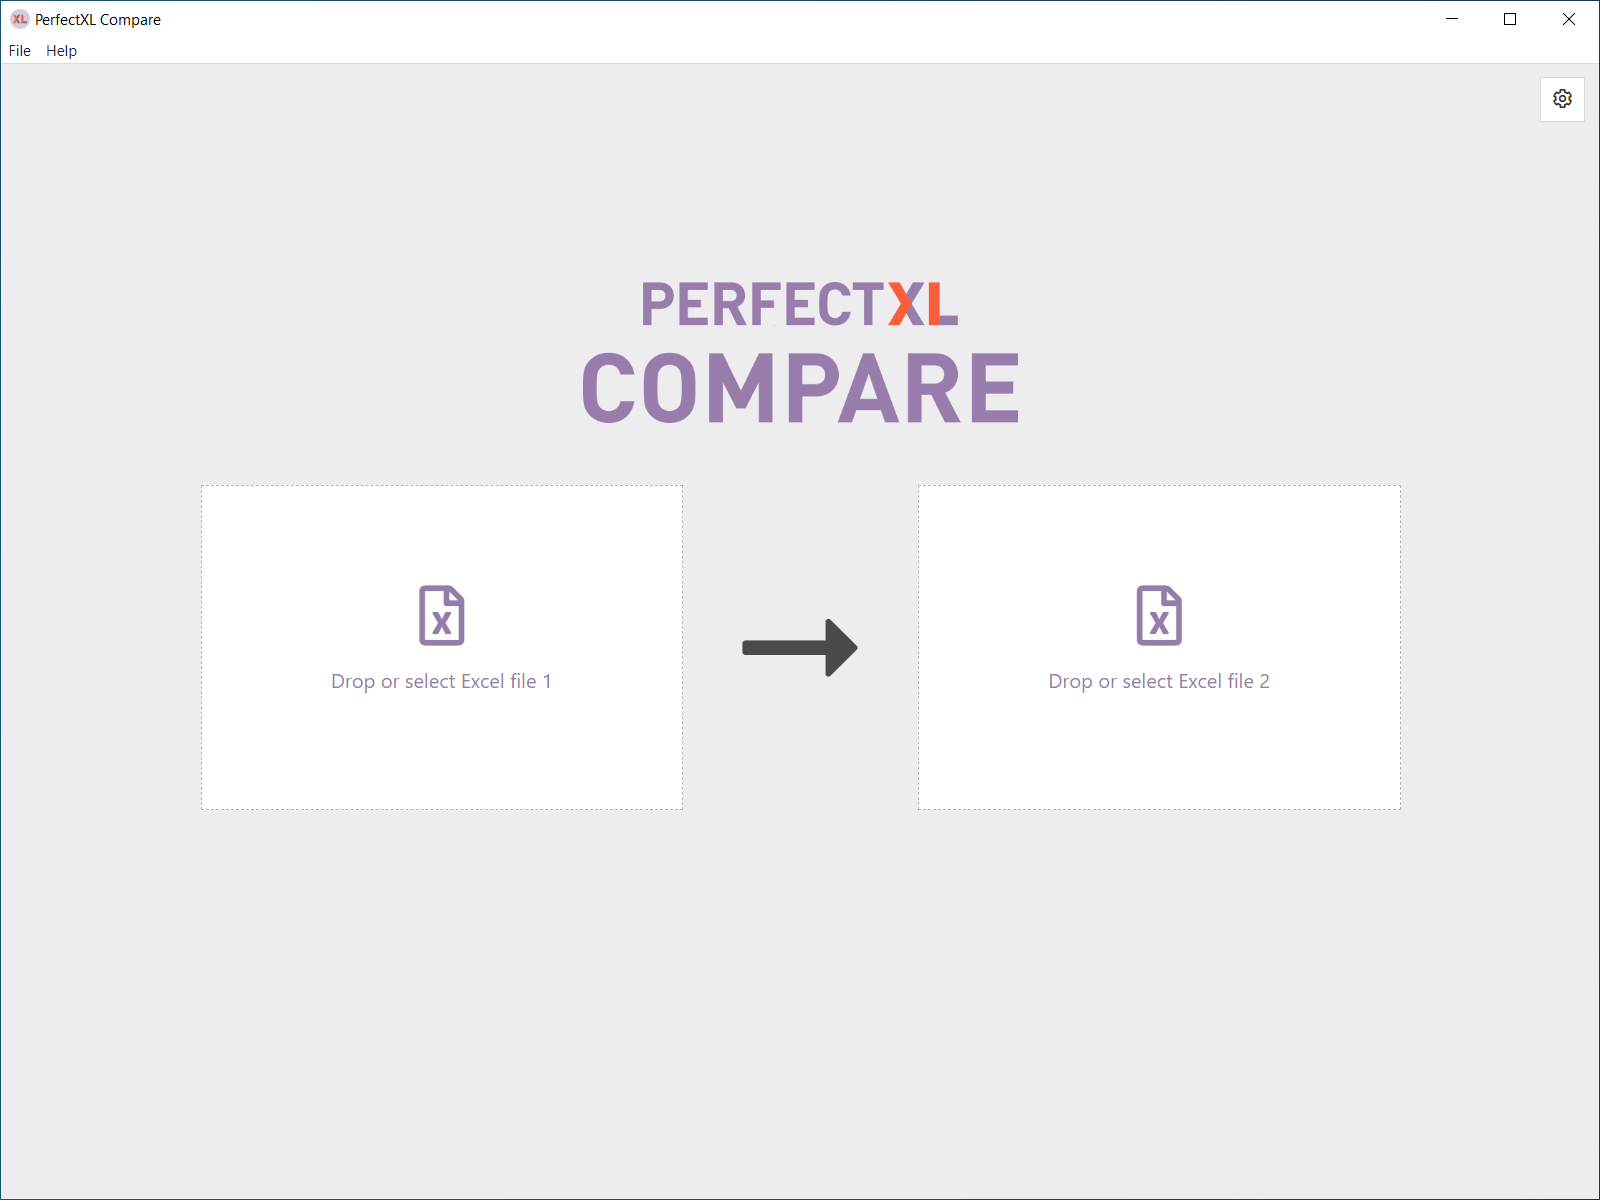 Getting started with PerfectXL Compare